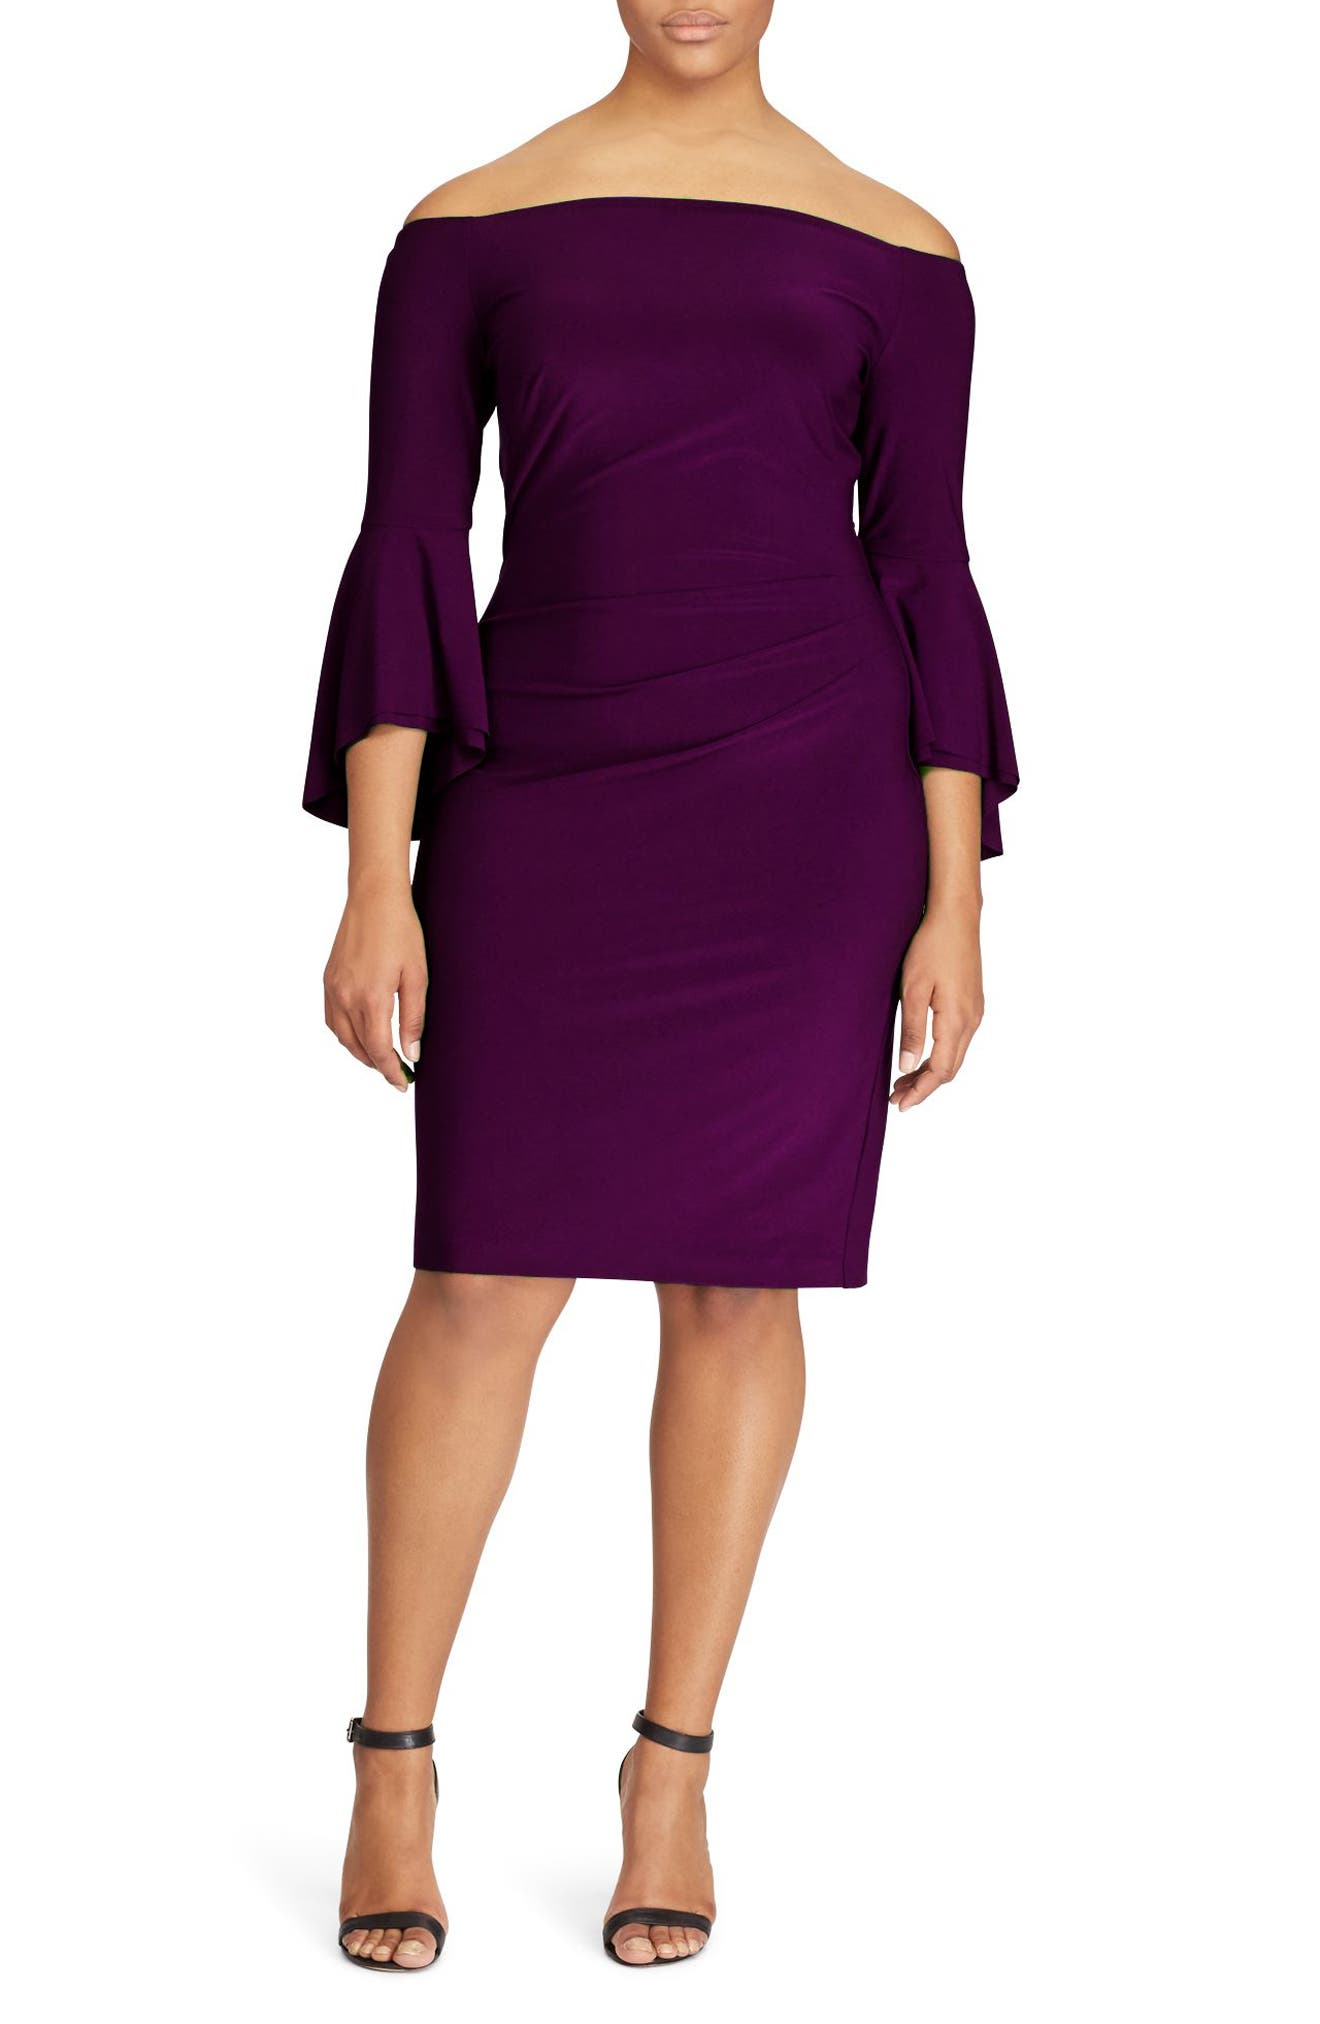 Lauren Ralph Lauren Bell Sleeve Sheath Dress (Plus Size)